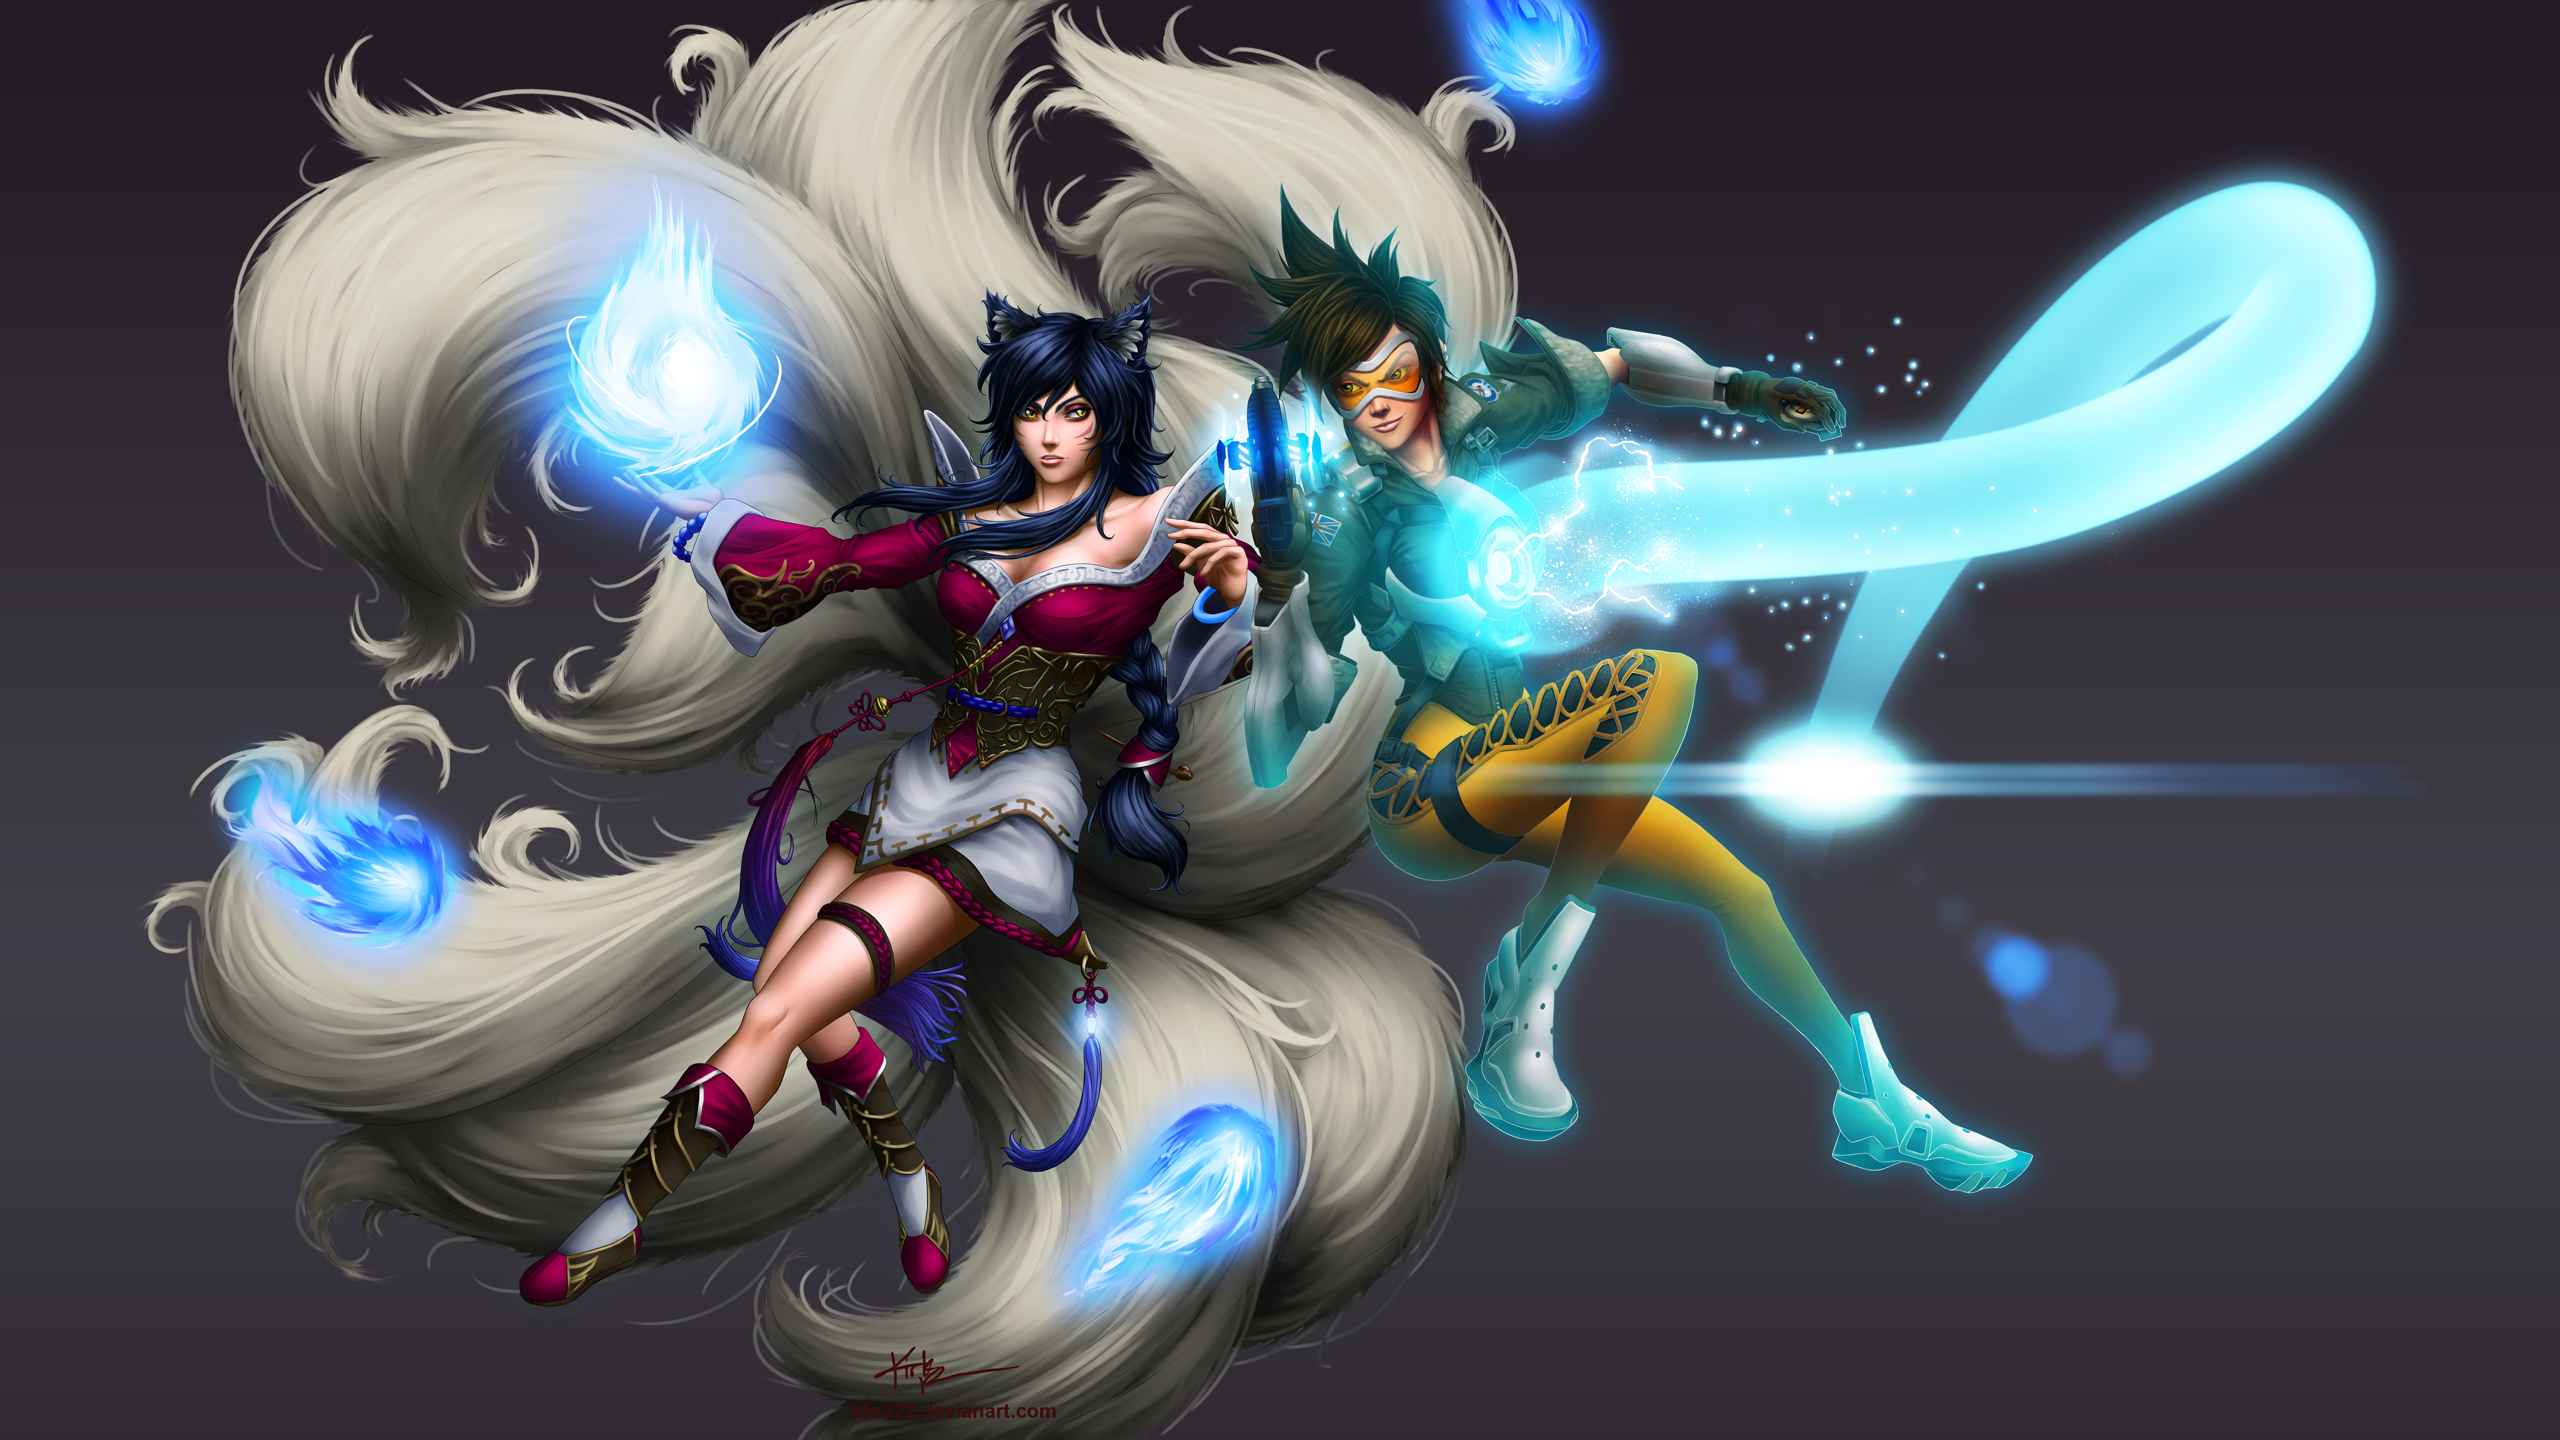 Video Game Crossover Flame Tracer Overwatch League Of Legends Ahri Wallpaper